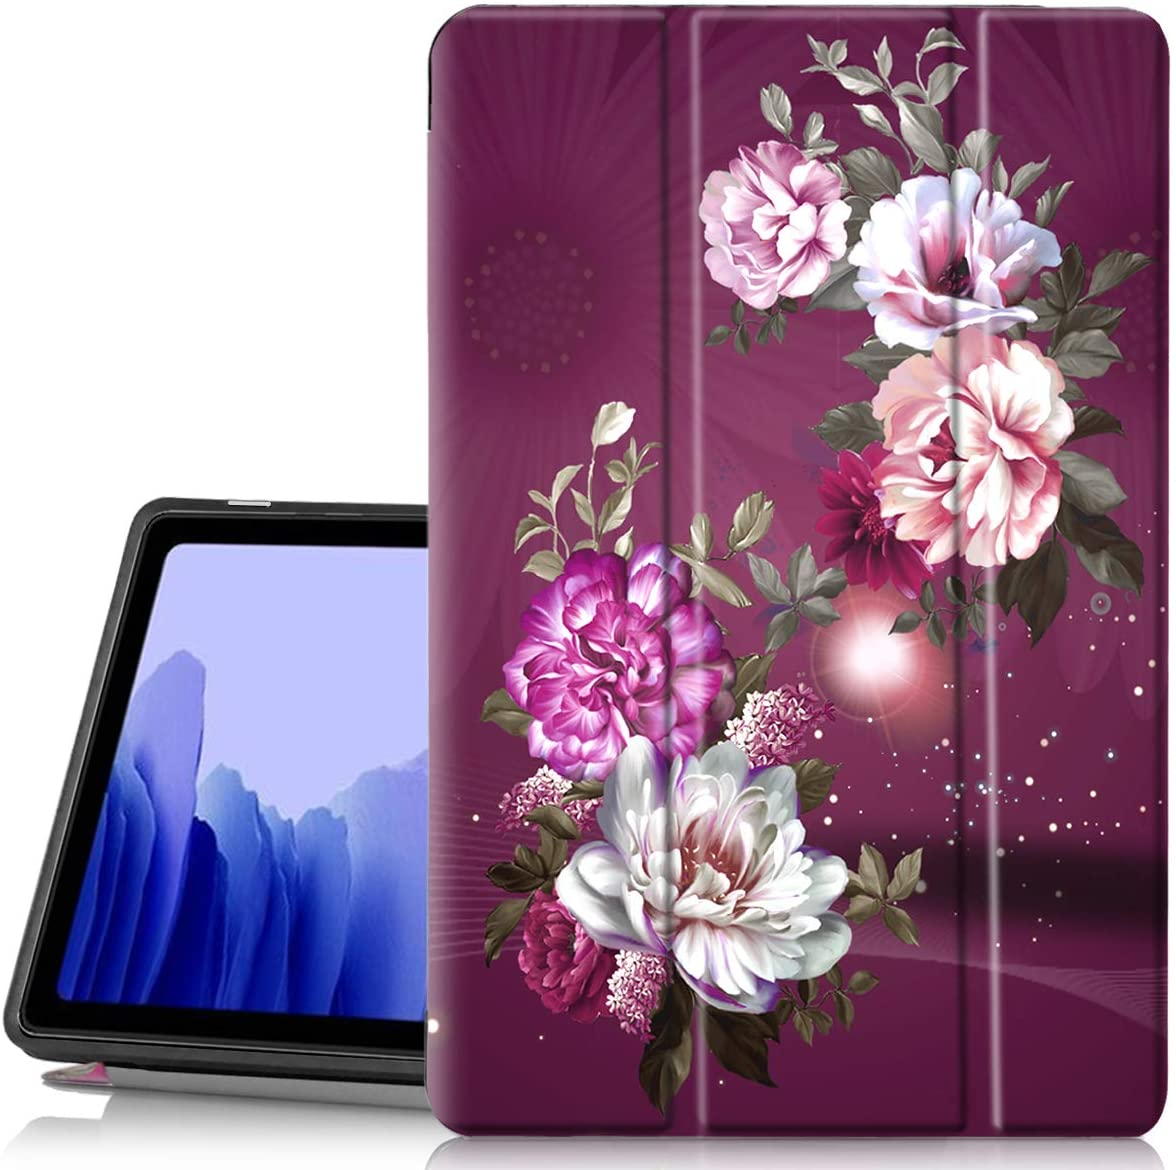 Hocase Galaxy Tab A7 10.4 Case, PU Leather Smart Flip Case with Cute Flower Design, Auto Sleep Wake Feature, Soft TPU Back Cover for Samsung Galaxy Tab A7 (10.4-inch Display) 2020 - Burgundy Flowers